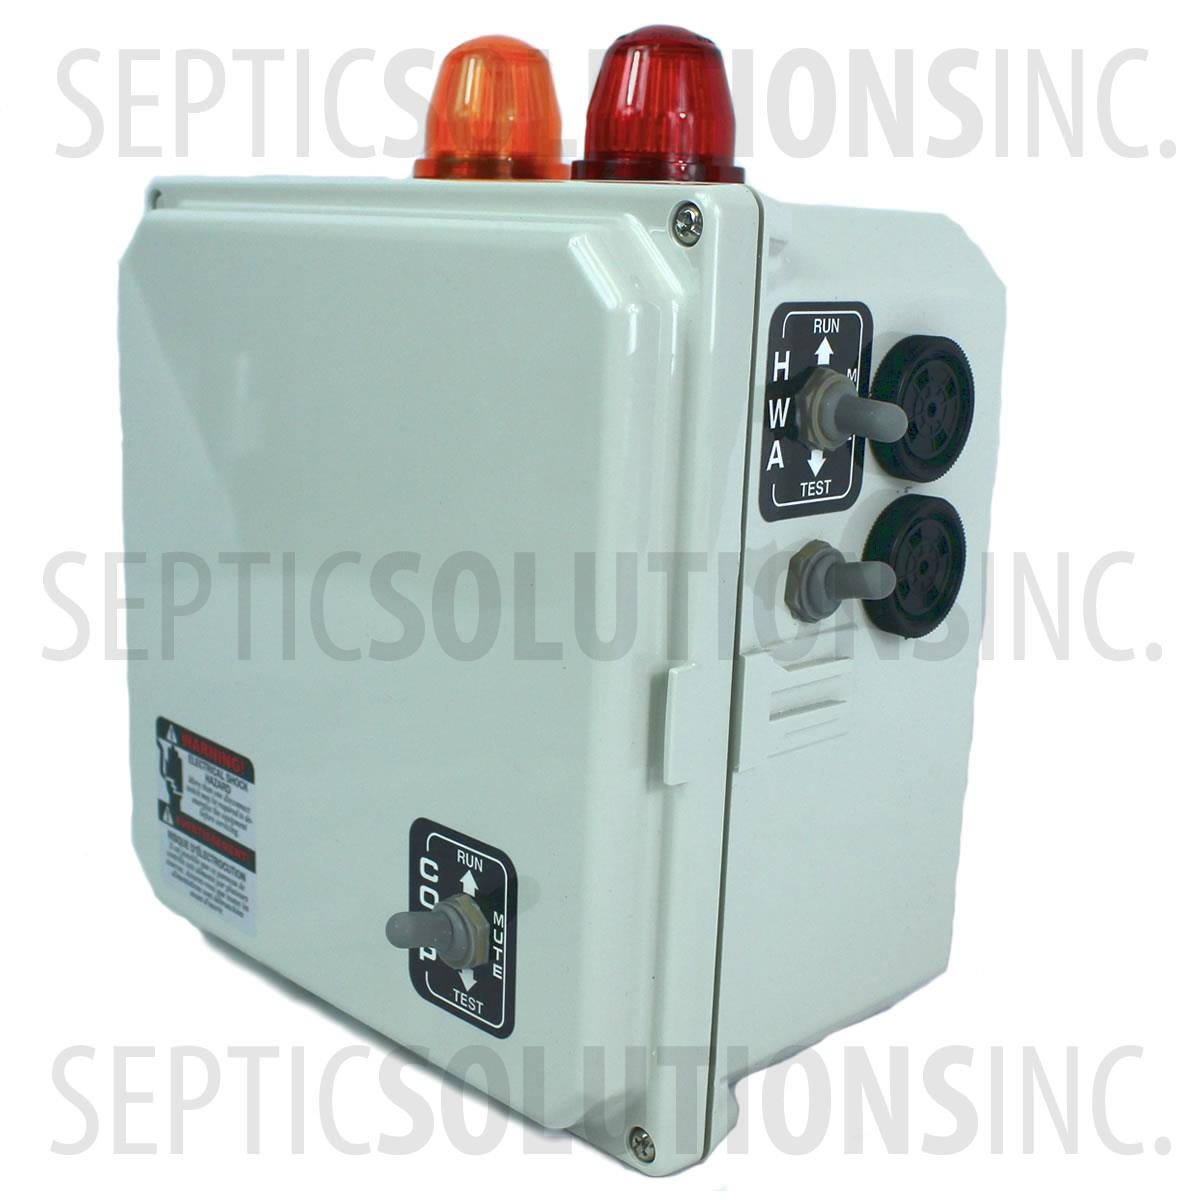 50B138_2?w=300 aerobic septic system control panels and alarms free shipping clearstream septic system wiring diagram at crackthecode.co